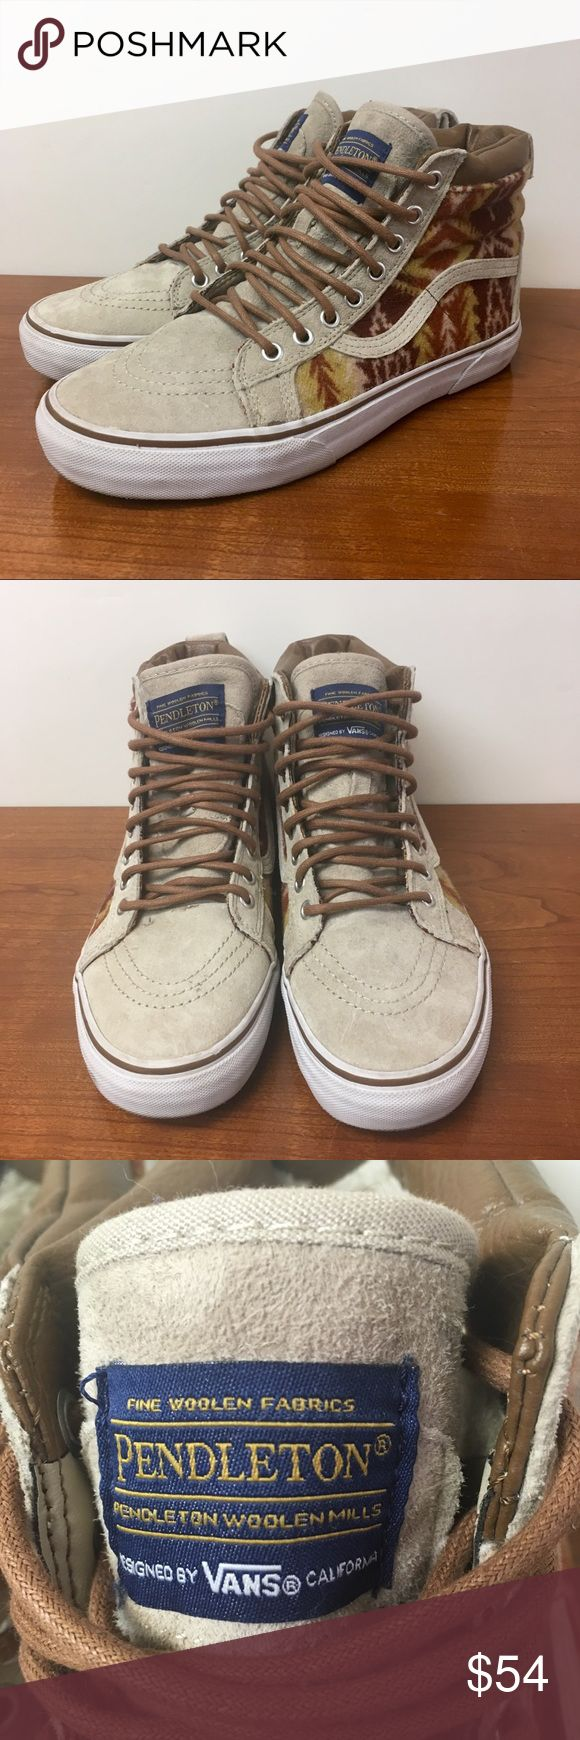 Vans x Pendleton Wool Fleece Lined hi tops An awesome collab Excellent condition Trusted quality and comfort  Smoke and pet free storage  Happy to answer any questions    Thanks for looking Vans Shoes Sneakers